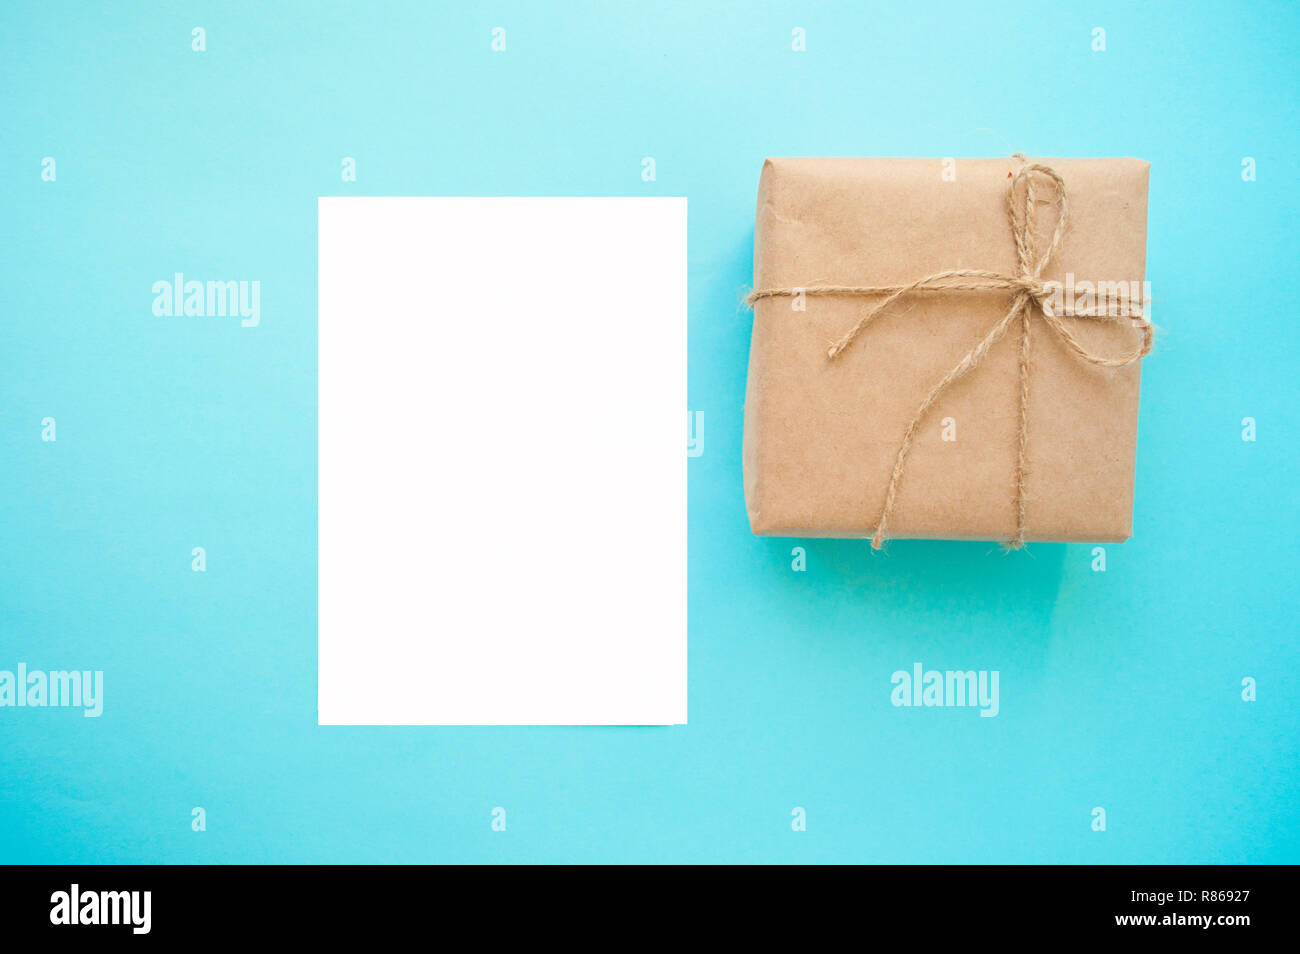 Gift Box Wrapped In Brown Colored Craft Paper And Tied With Cord On